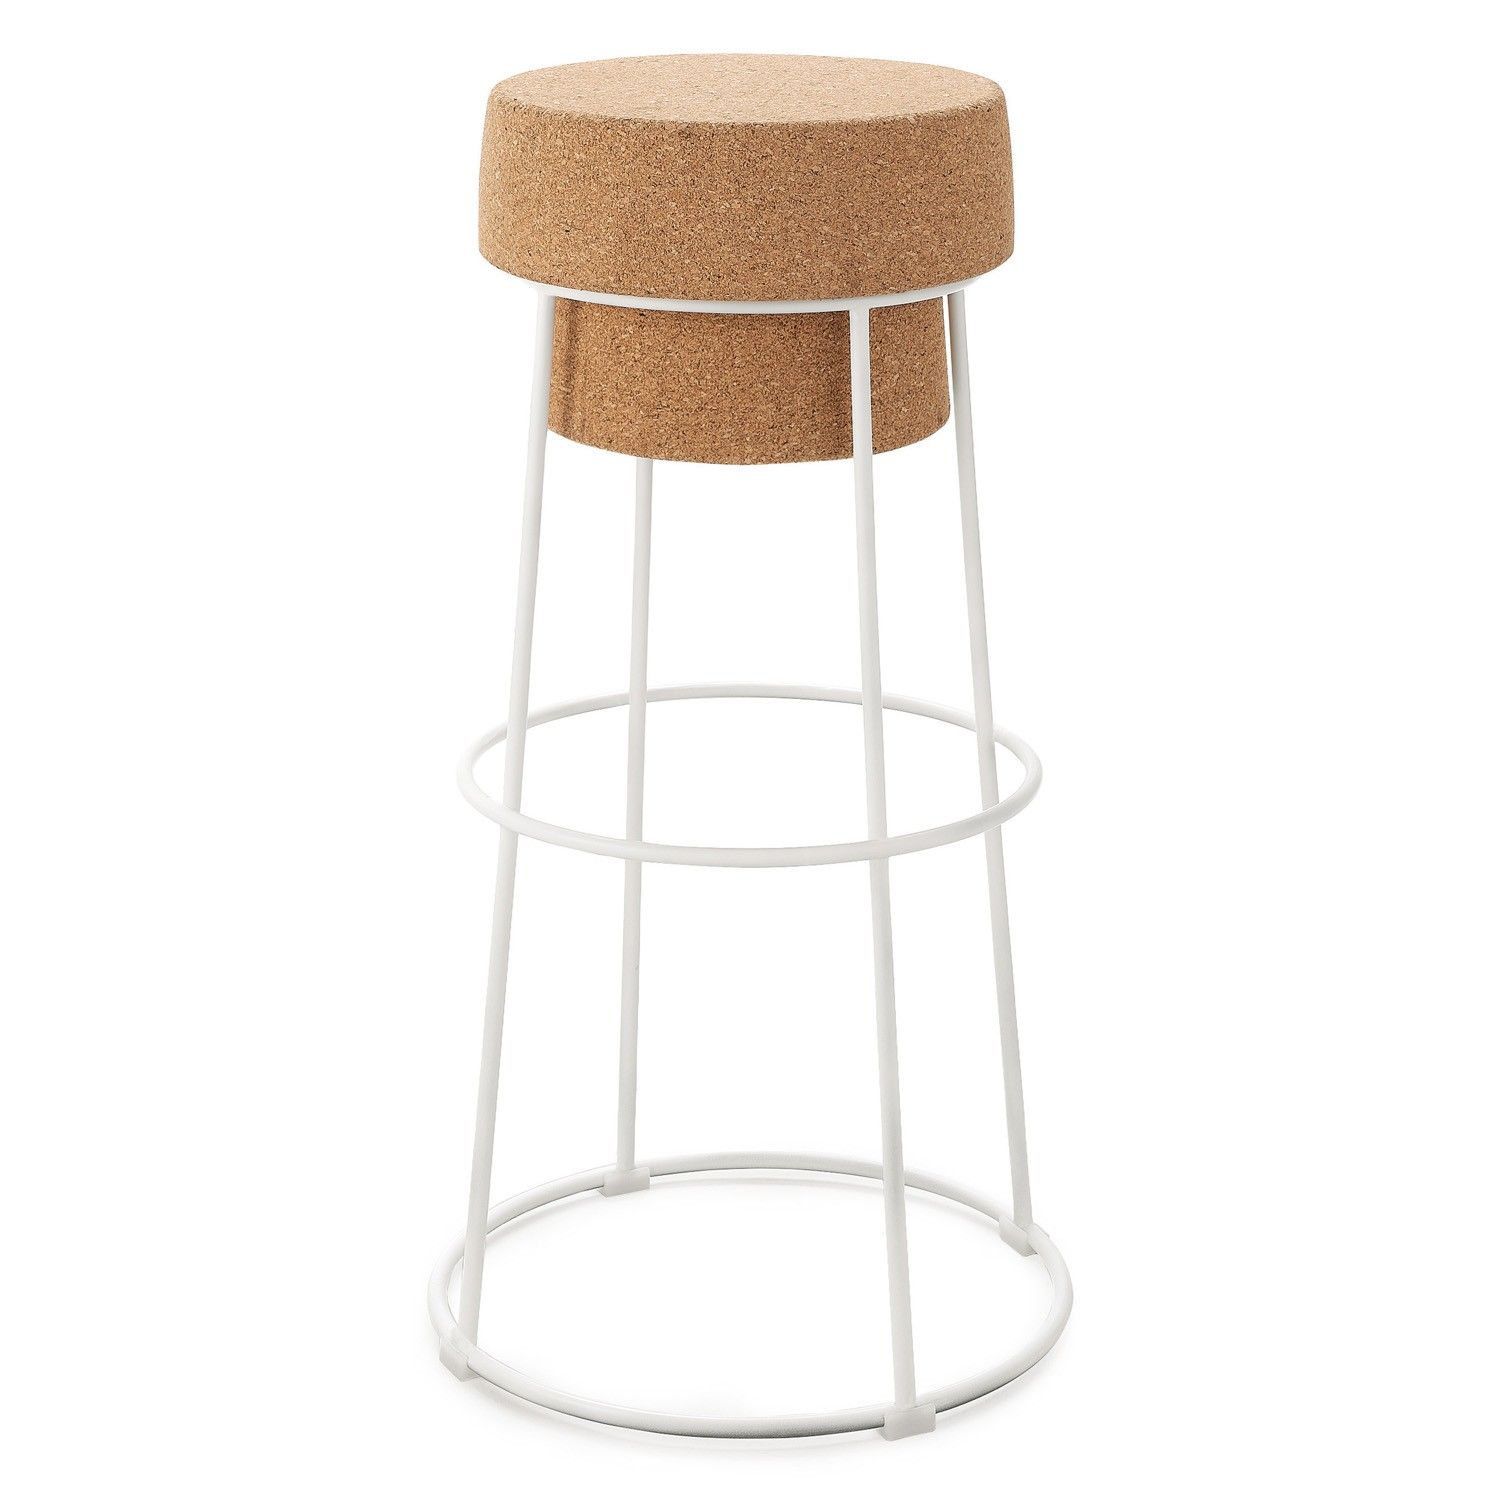 Refresh Your Kitchen With Modern Bar Stools | Stools, Modern bar ...